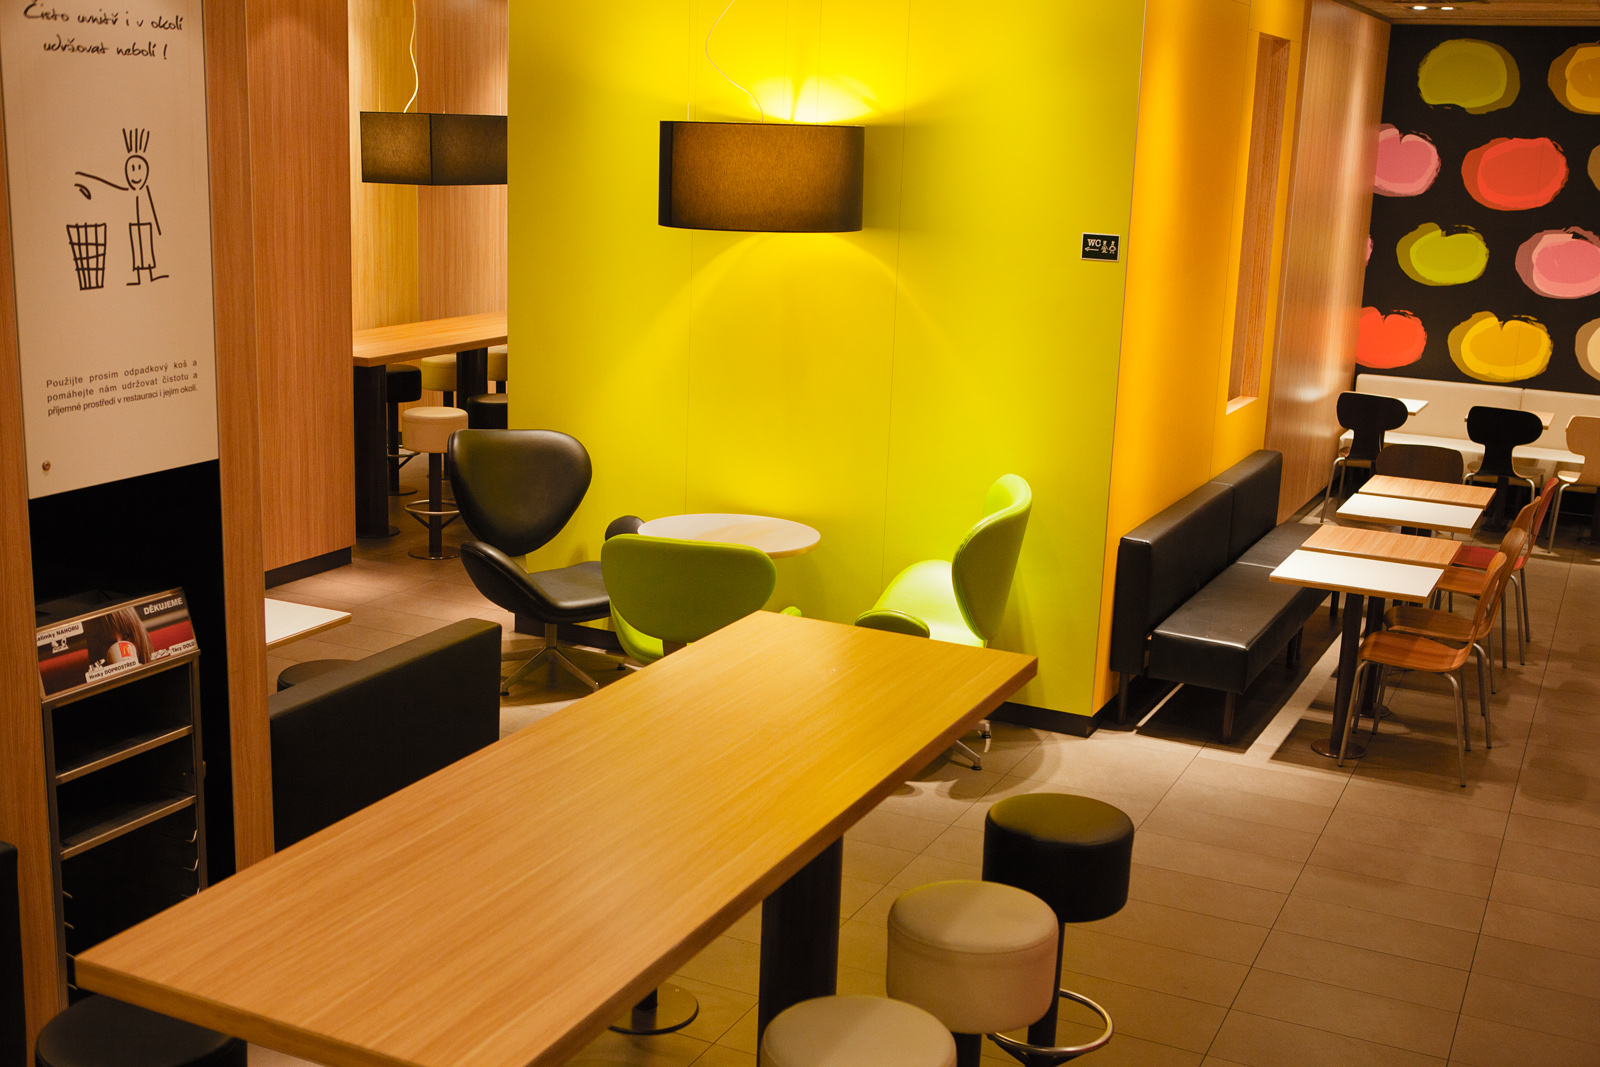 mcdonalds_decor_7141-2